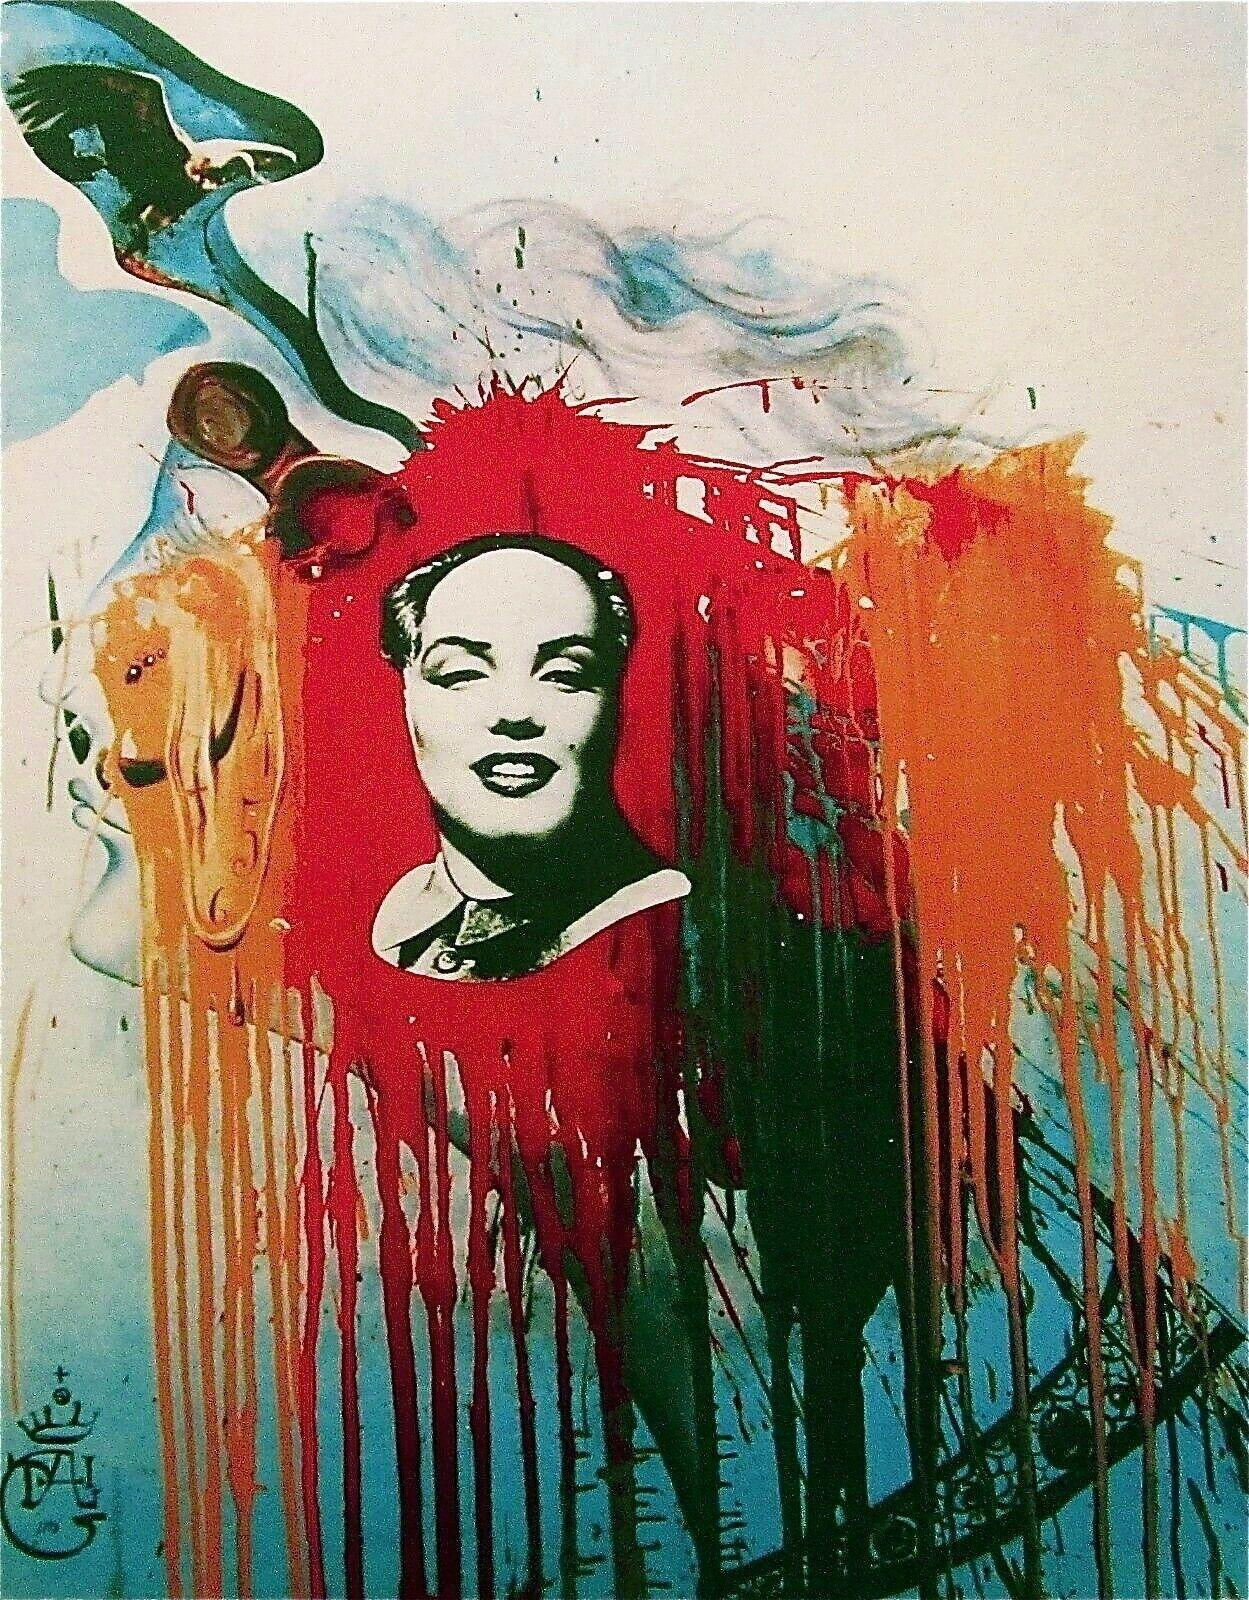 Marilyn-Mao, 1989 Limited Edition Lithograph, Salvador Dali - 1st Edition